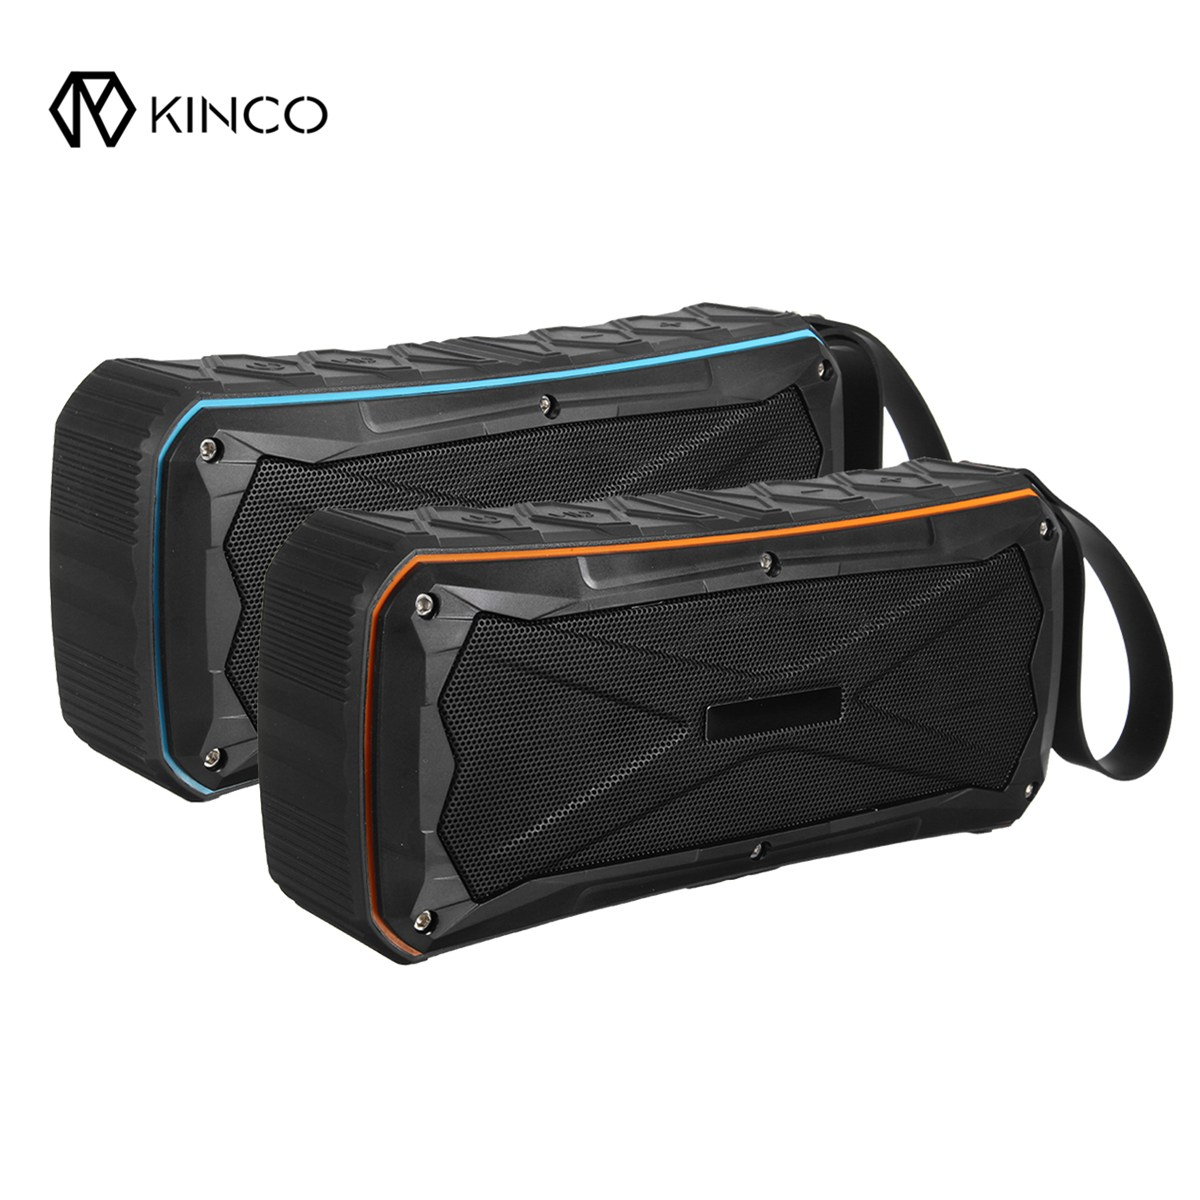 Kinco Max 20W Wireless Bluetooth 4.1 Wireless Speaker Stereo With Hand Strap Outdoor Portable Waterproof